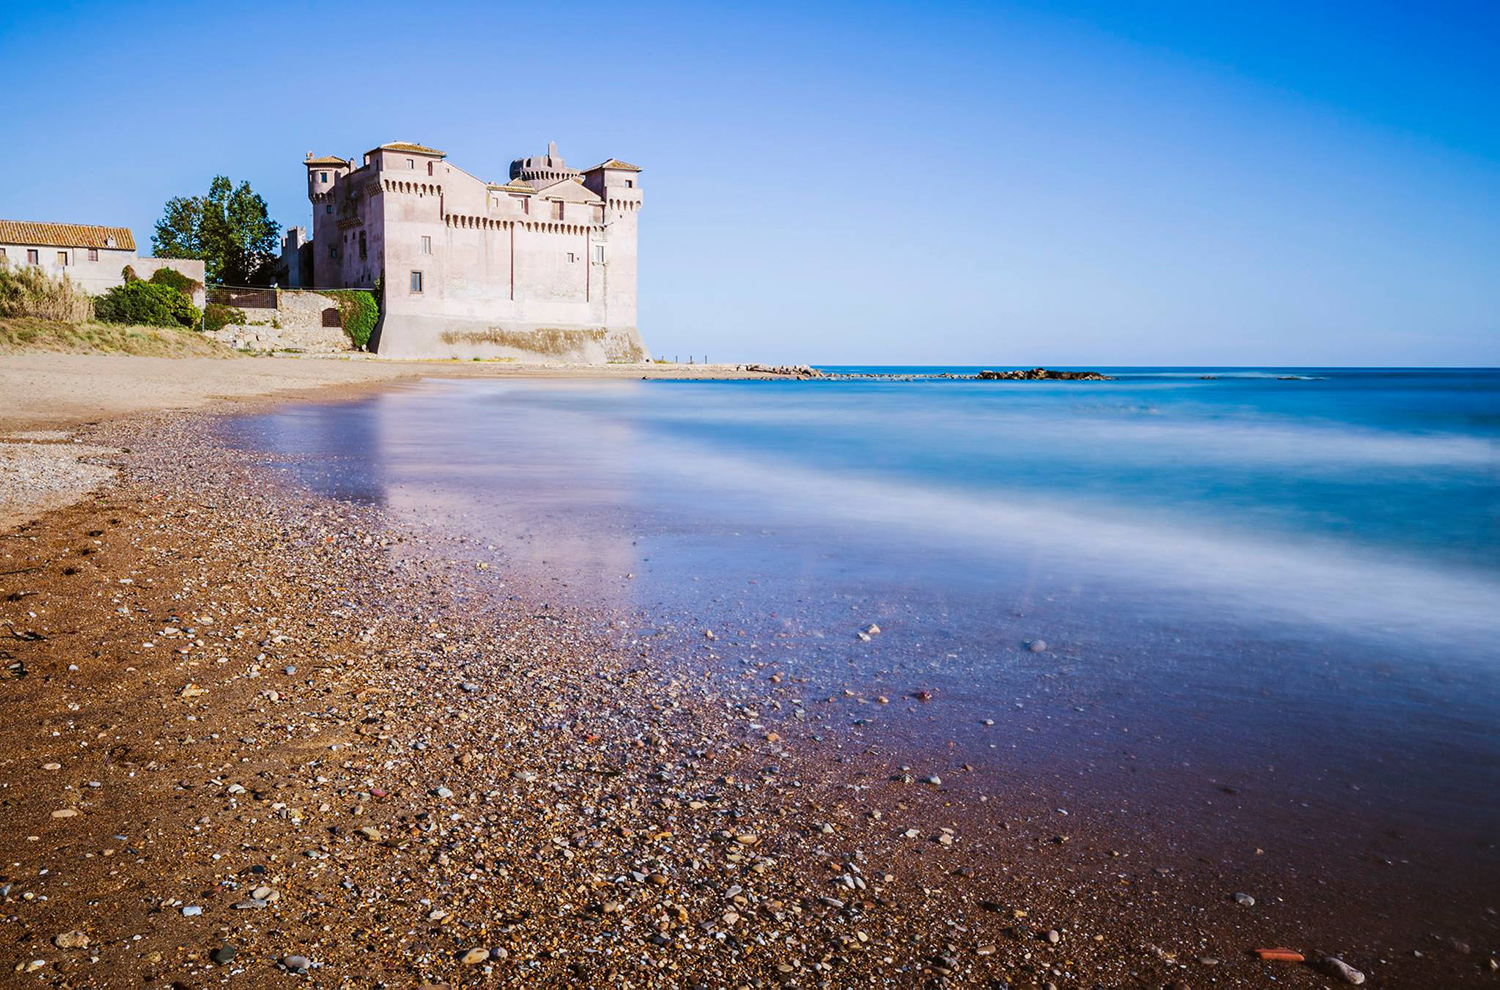 The Castle of Santa Severa